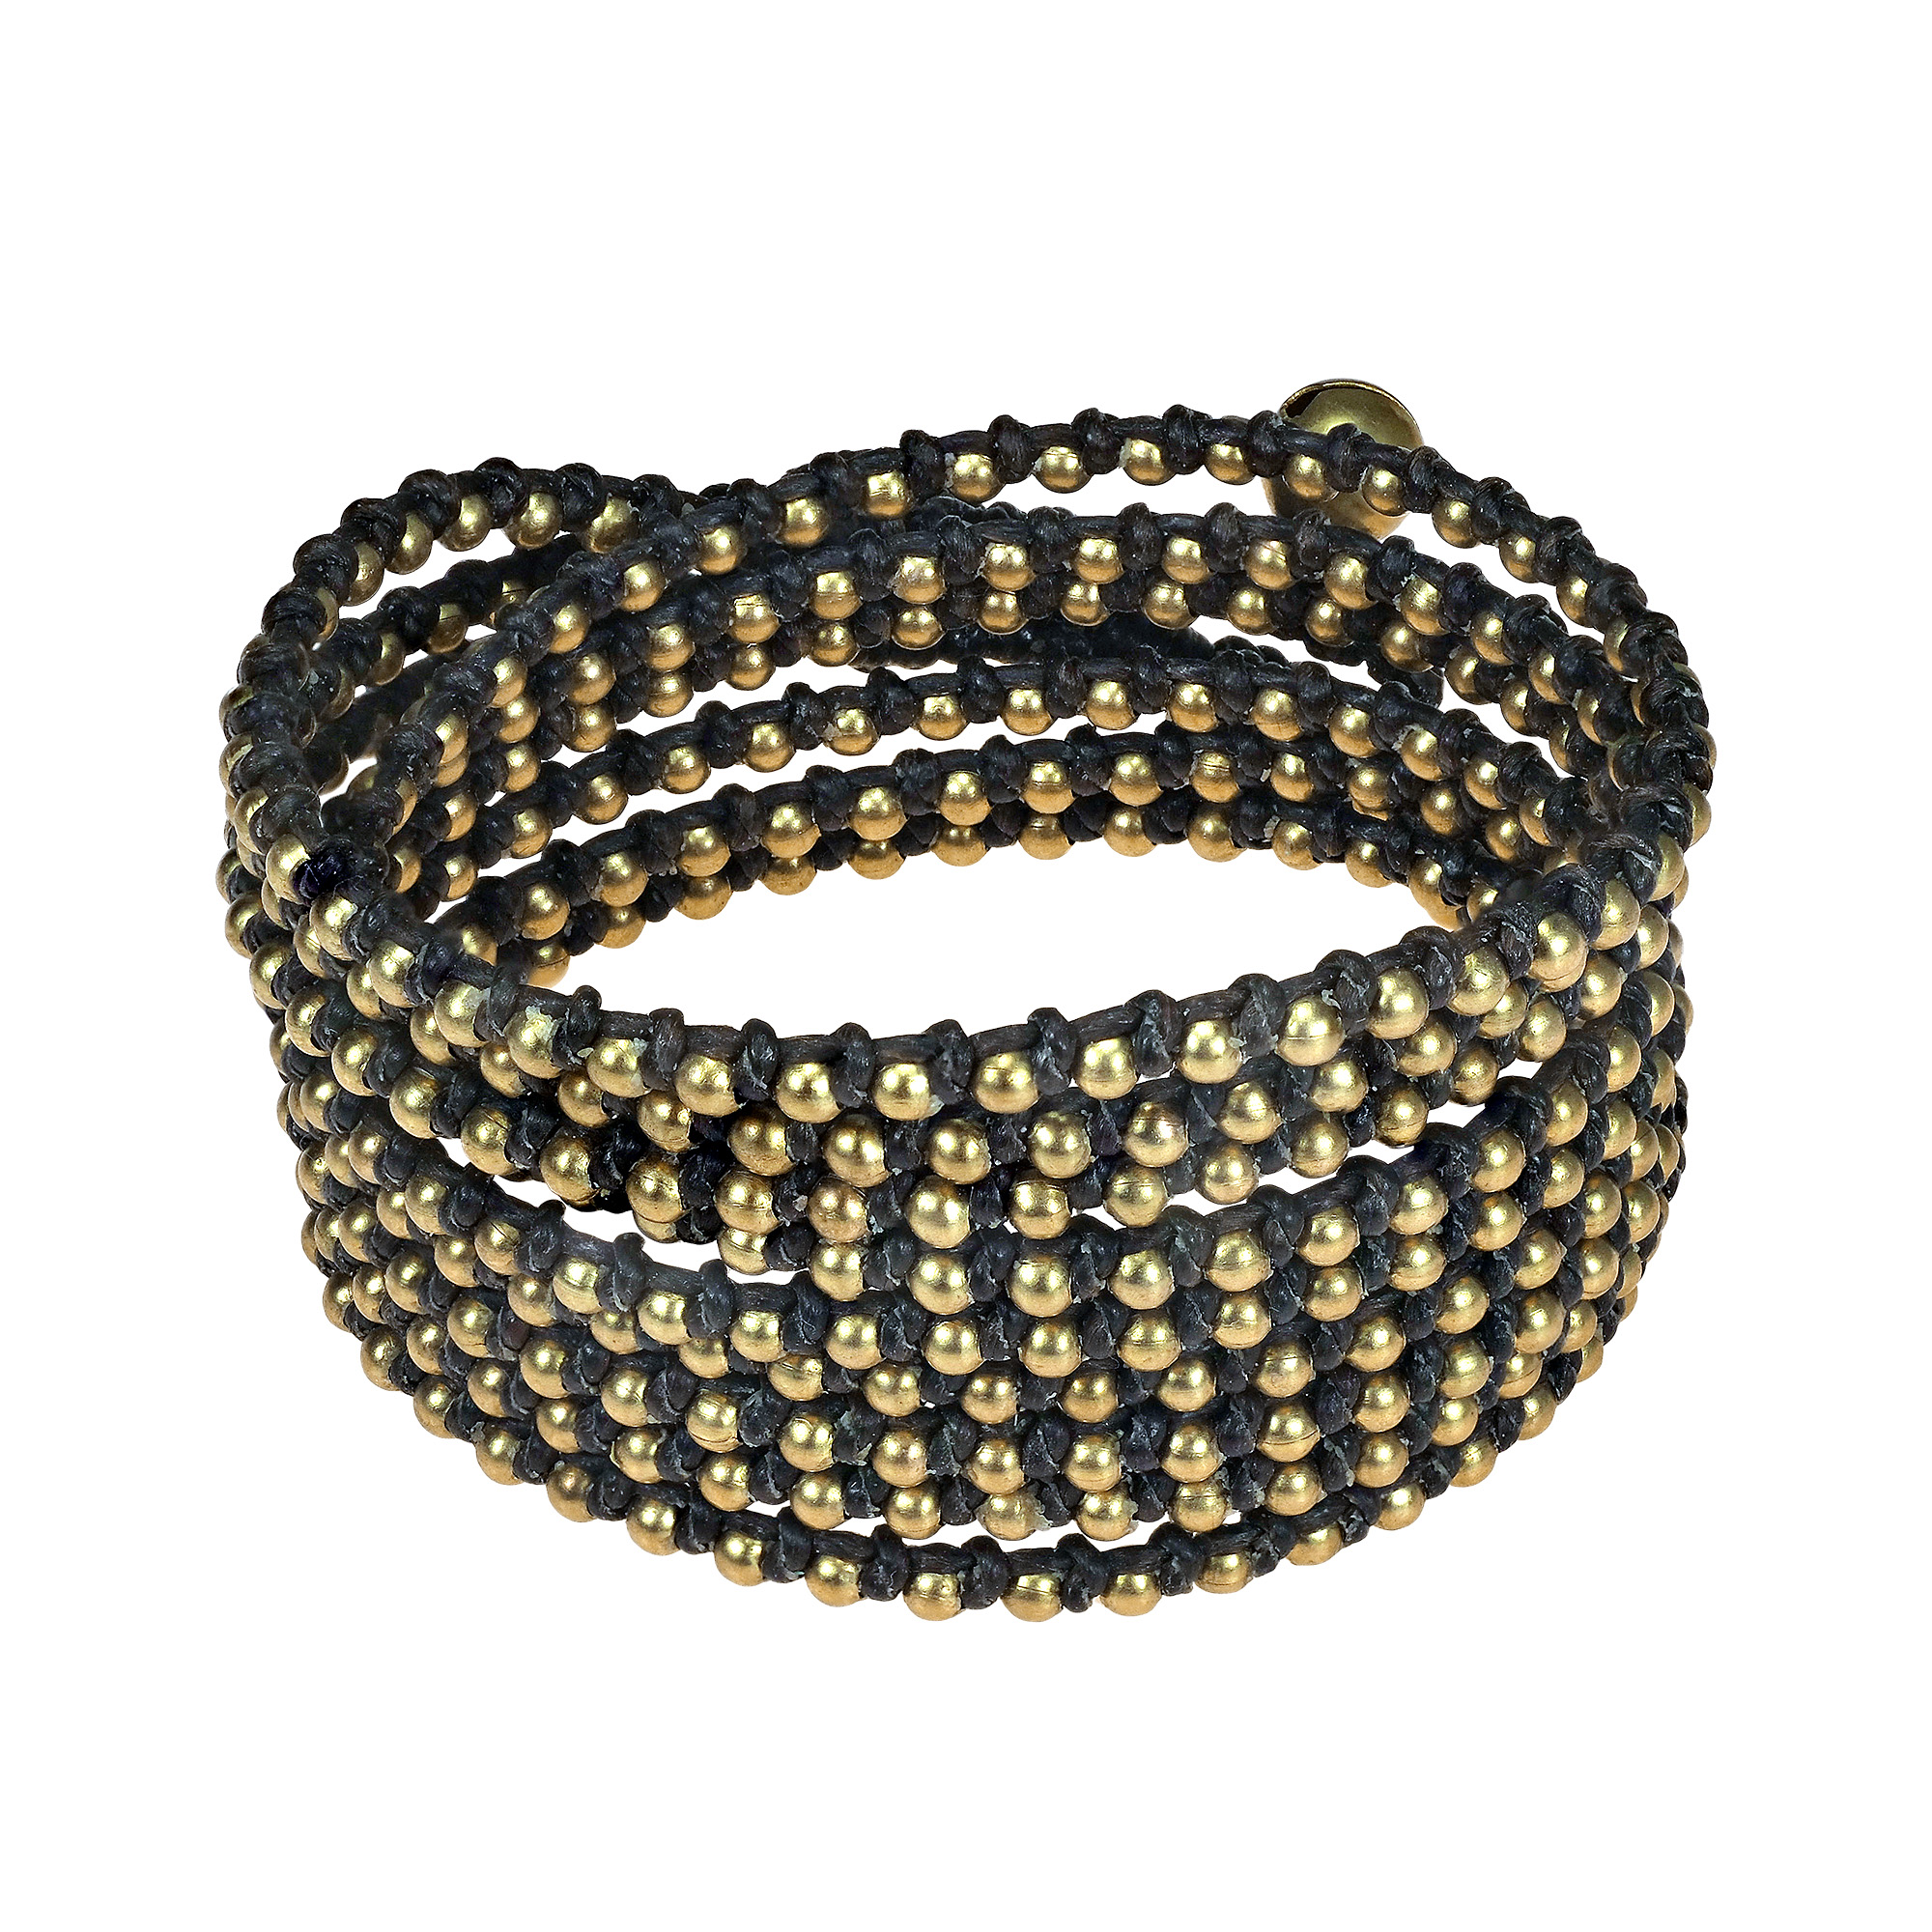 triple sobe in schwartz the bar rose wrap liza bracelet gold metallic